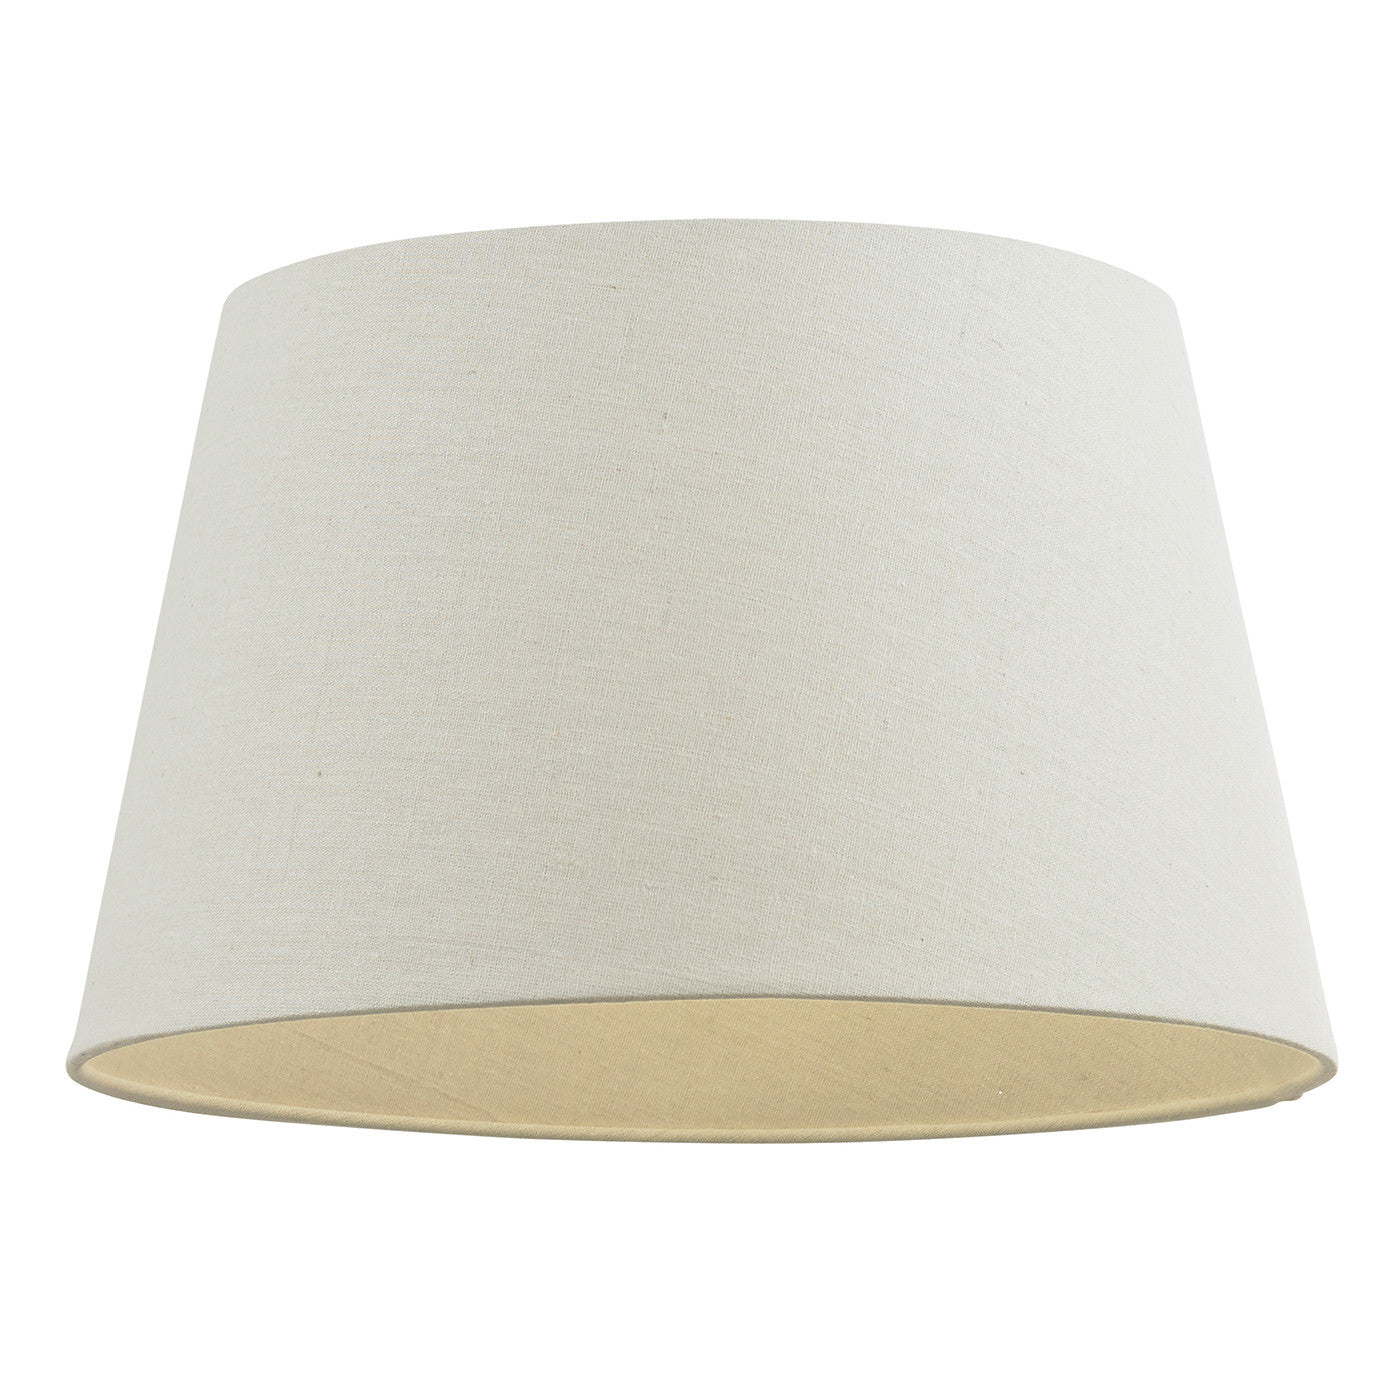 Cici 12 Inch Ivory Table/Floor Lampshade